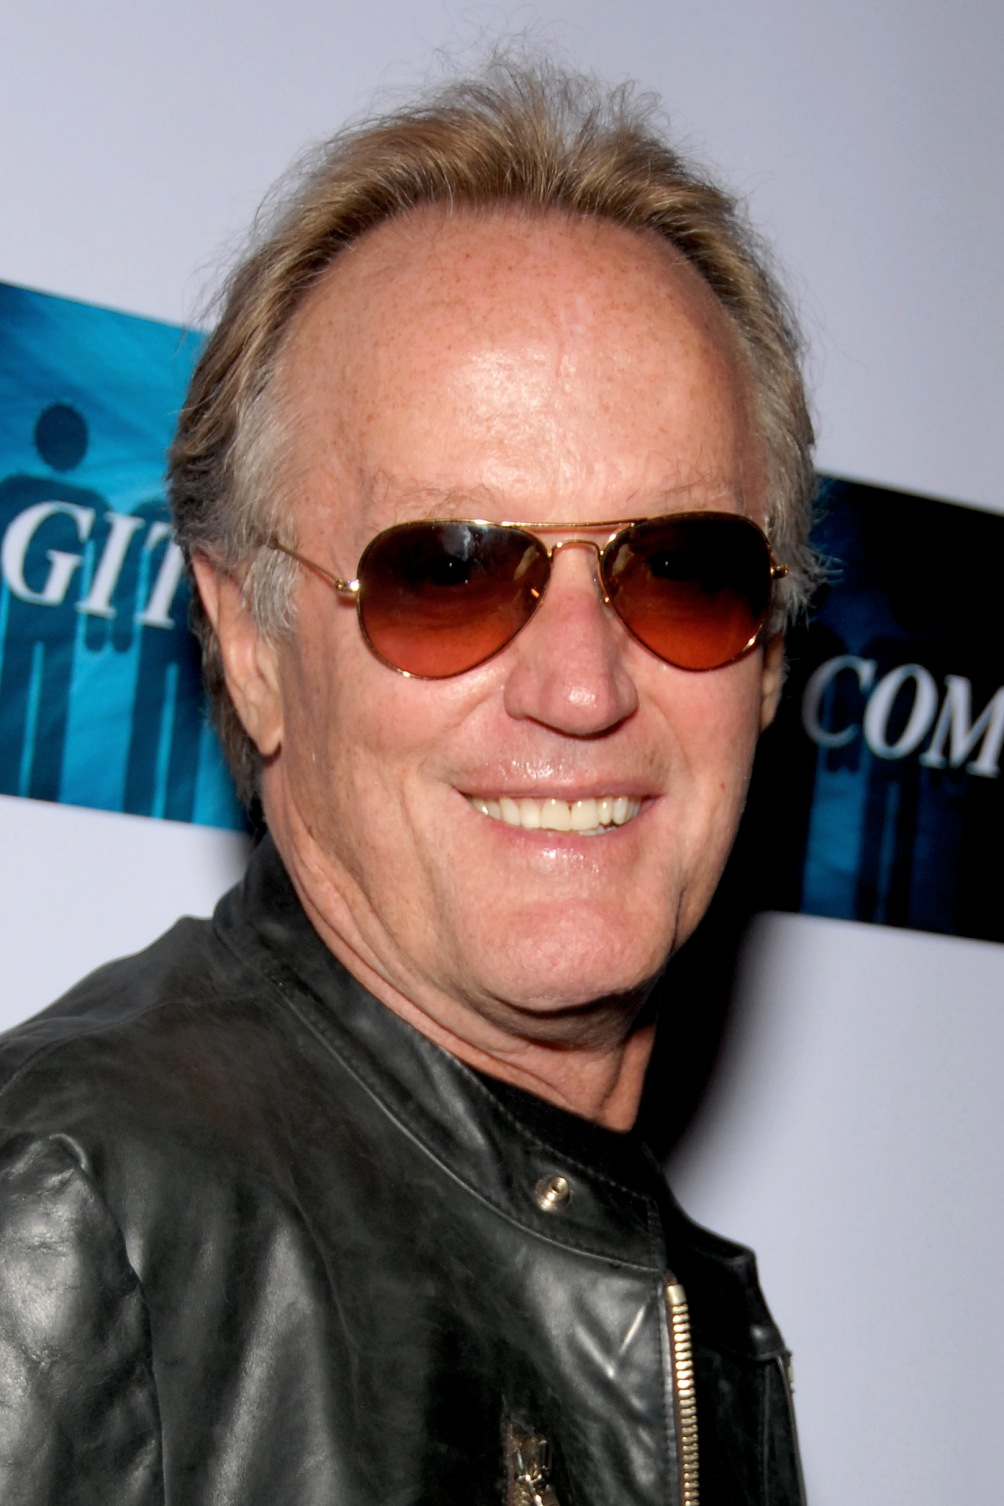 Peter Fonda to Accept Artivist Award at 7th Artivist Film Festival Awards